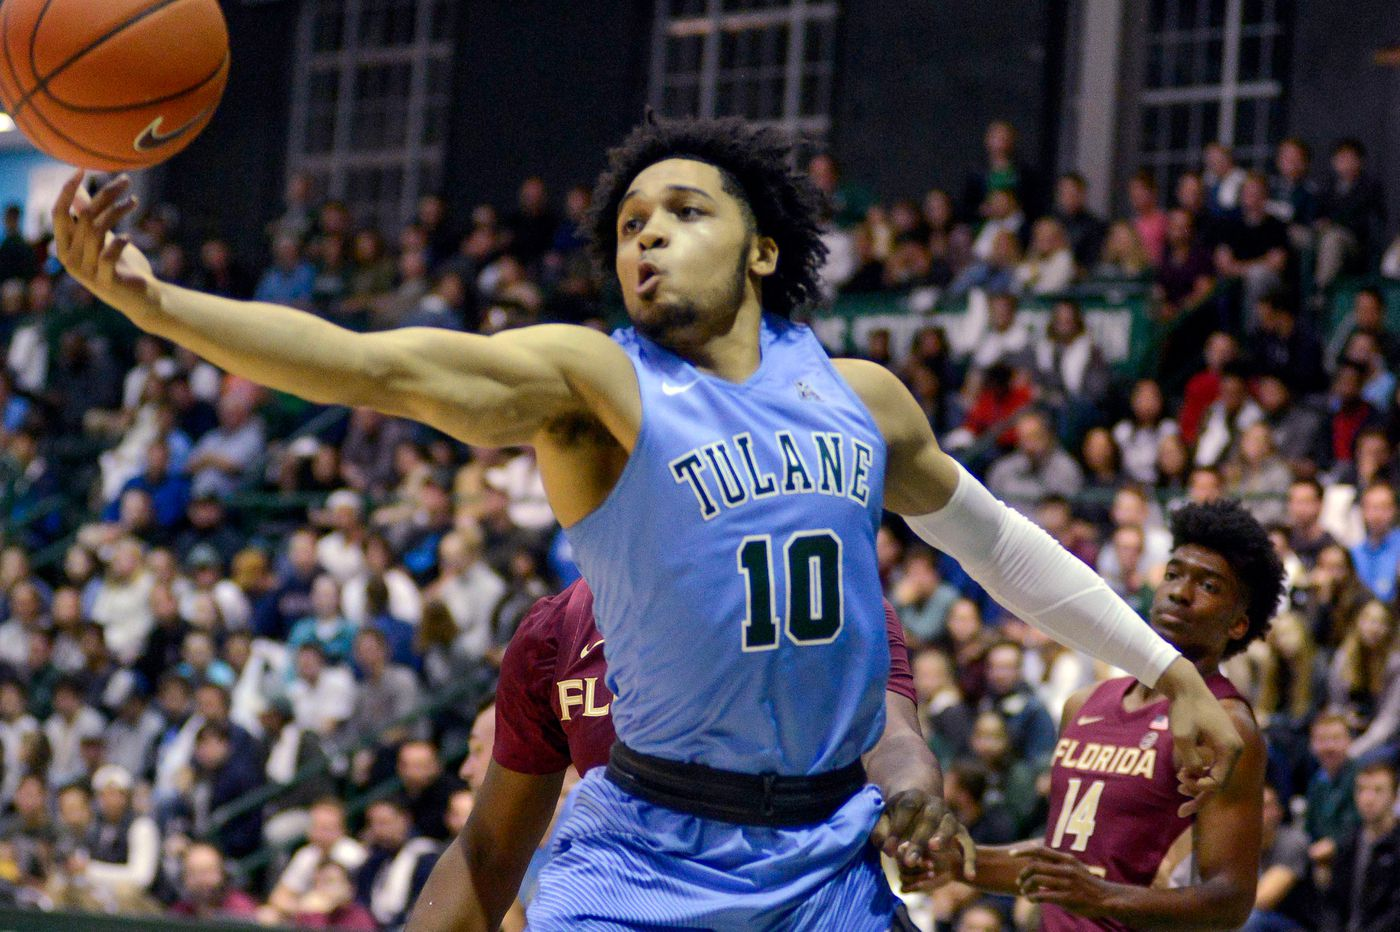 Villanova's Caleb Daniels decided to transfer from Tulane after a one-on-one game against Collin Gillespie